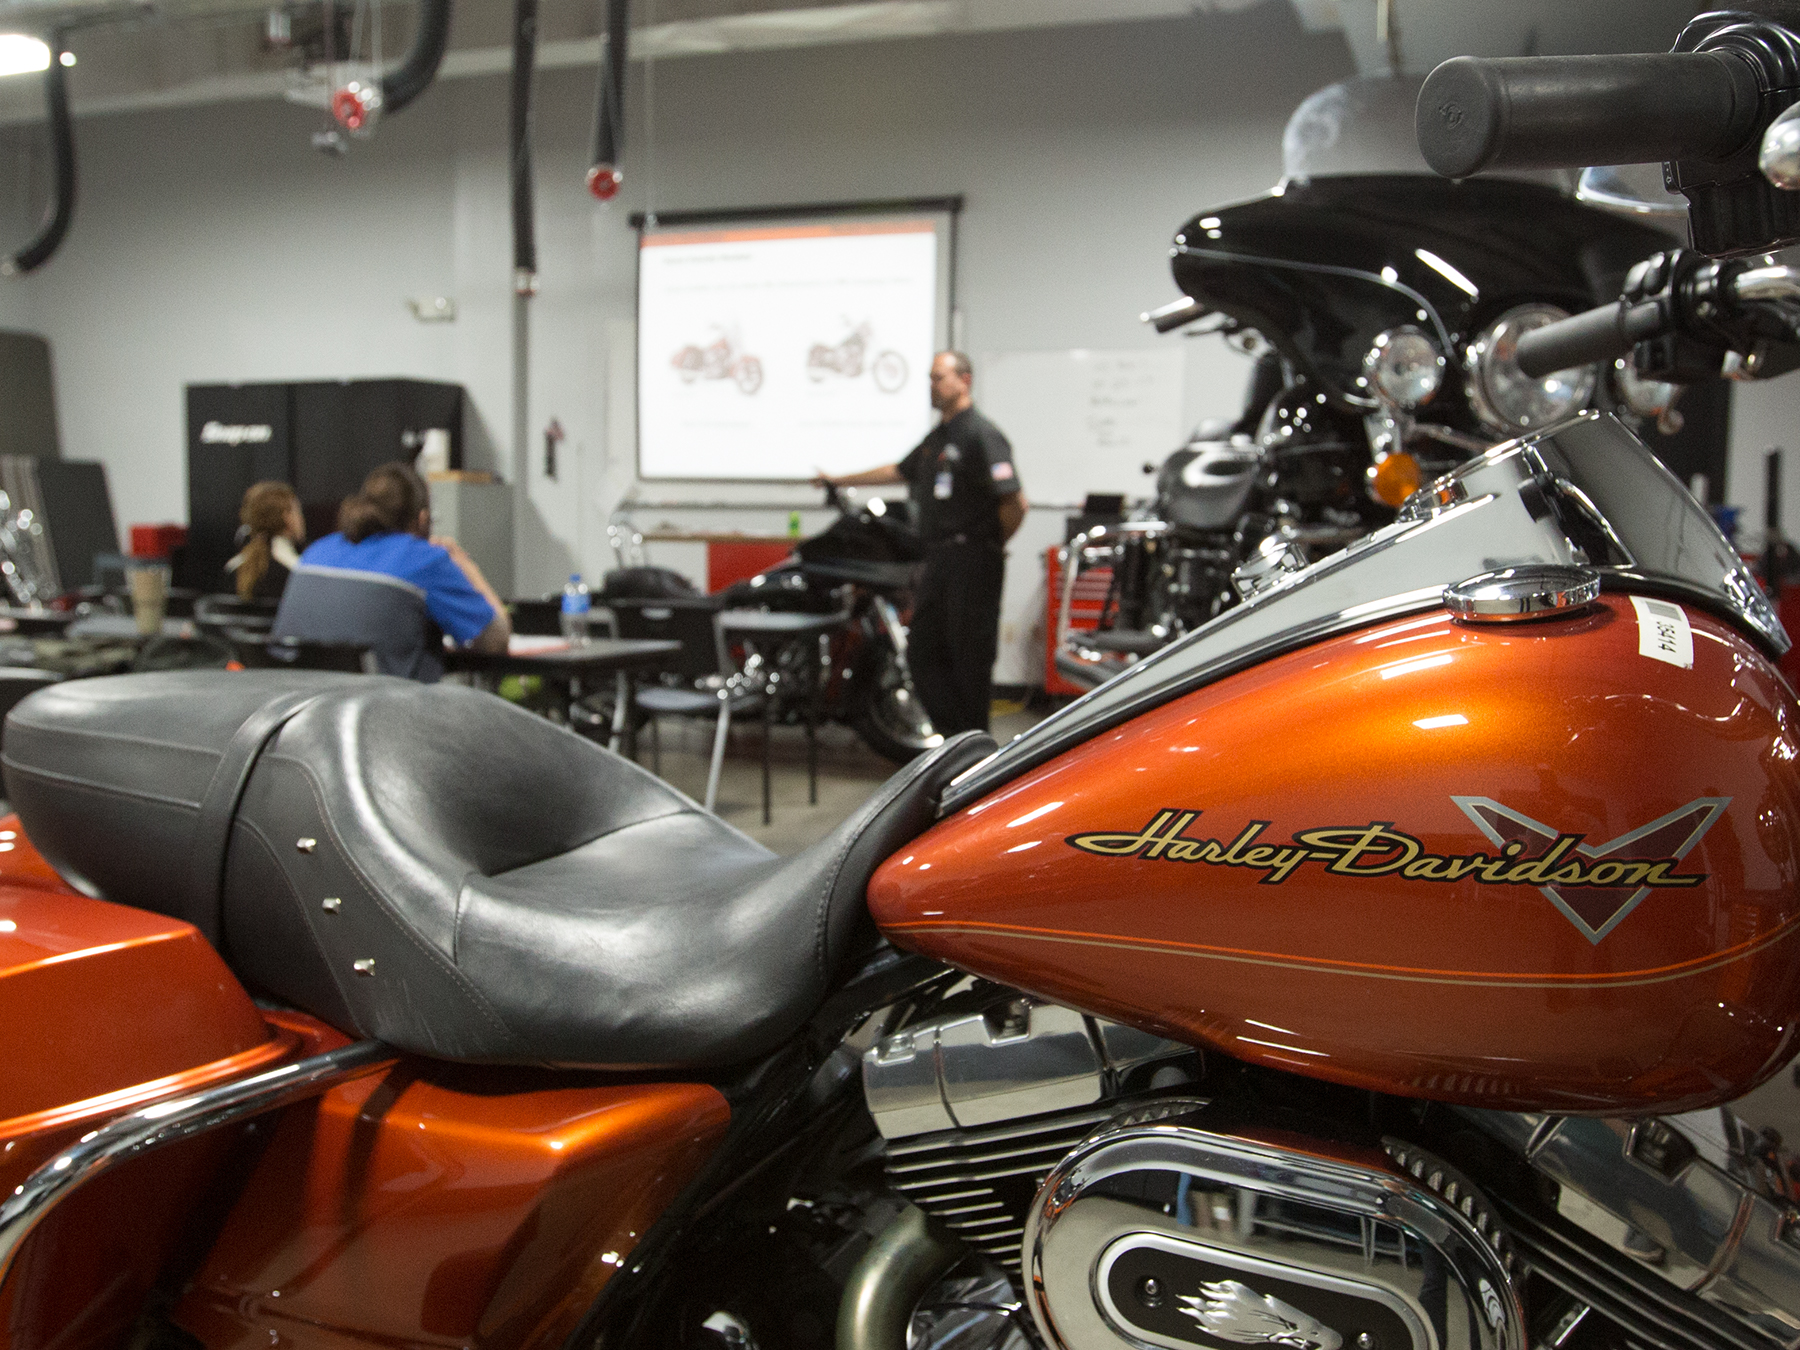 Orange Harley Davidson motorcycle with instructors and students in the background